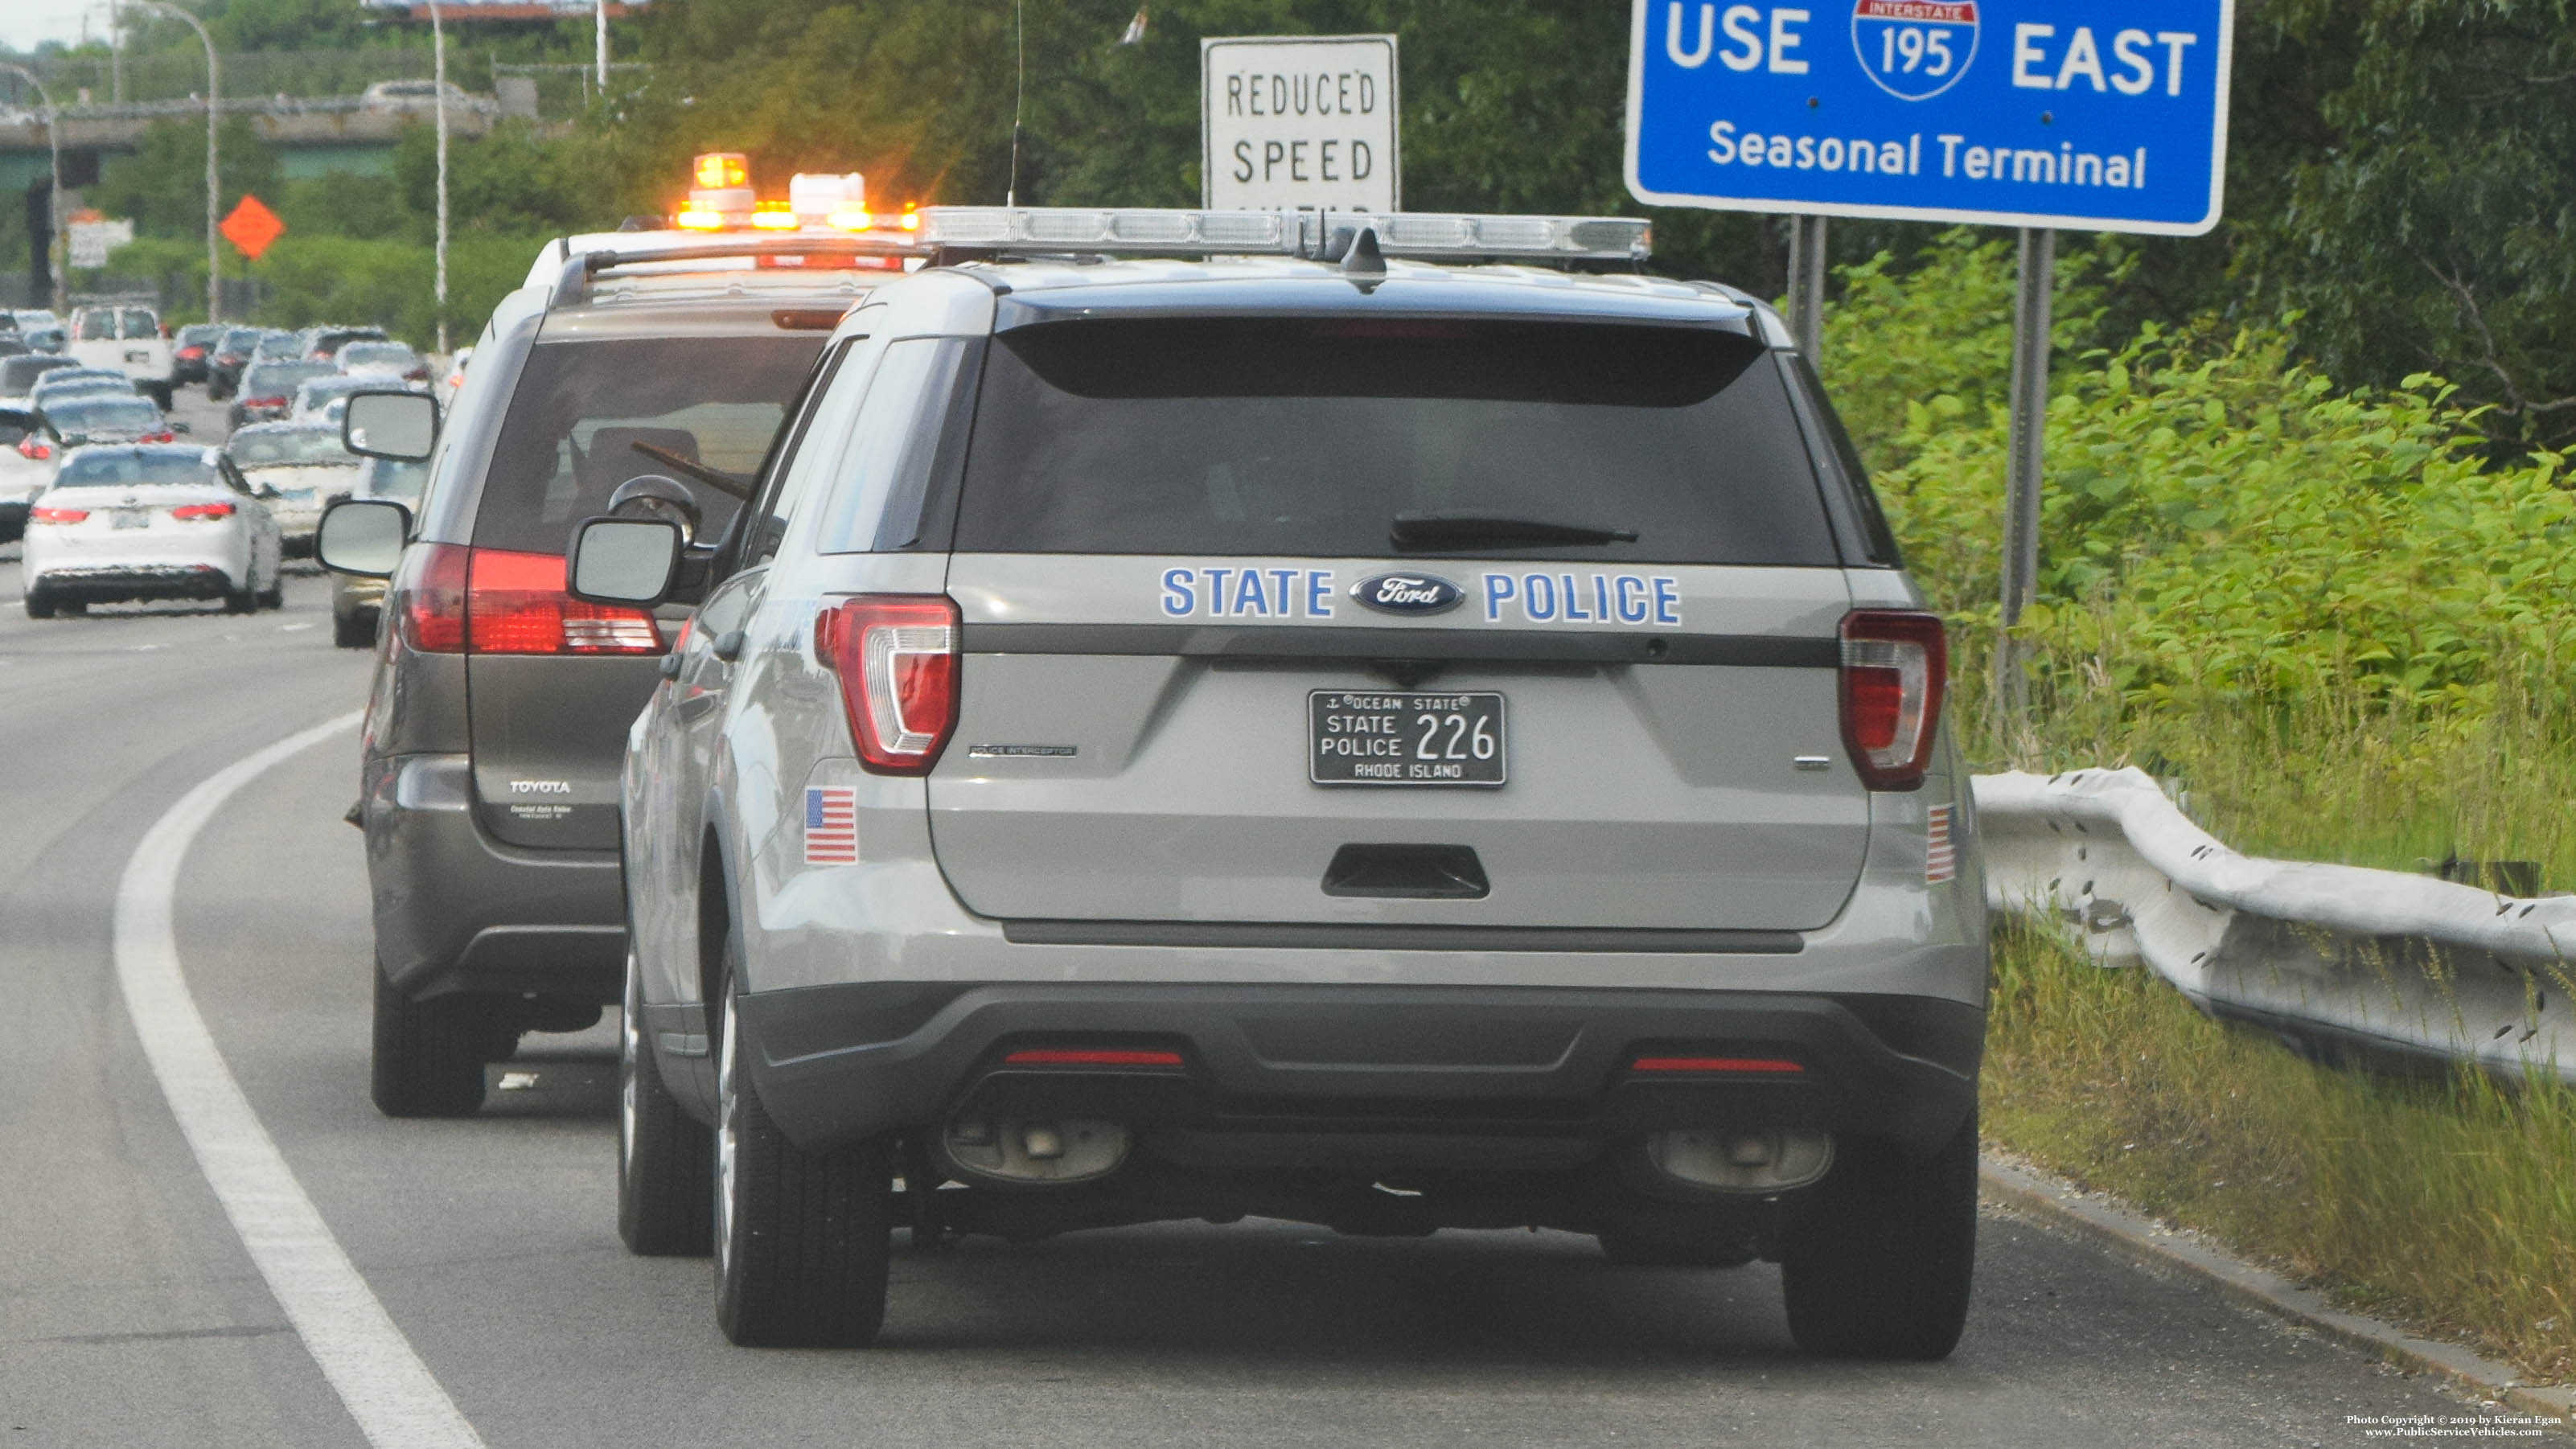 A photo  of Rhode Island State Police             Cruiser 226, a 2016-2019 Ford Police Interceptor Utility             taken by Kieran Egan